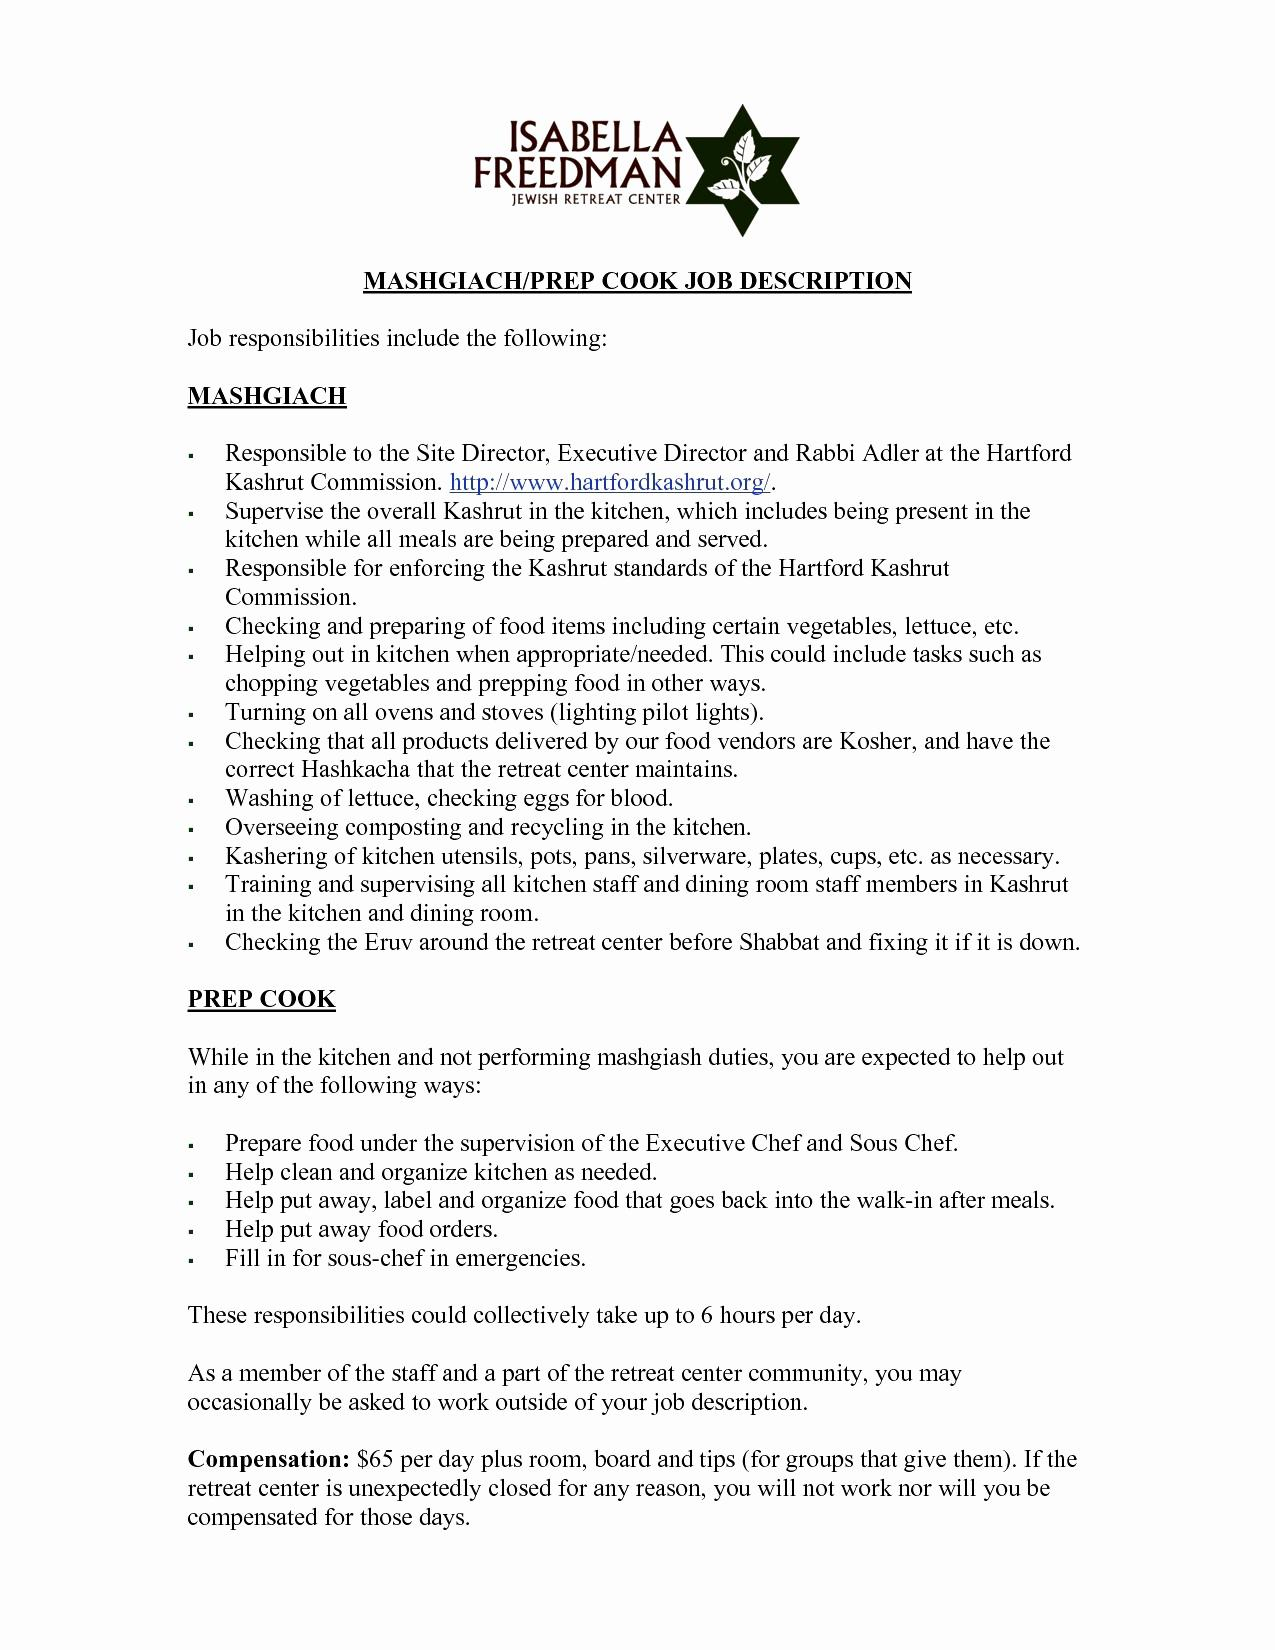 Template For Letter Of Reference For Employment Samples Letter